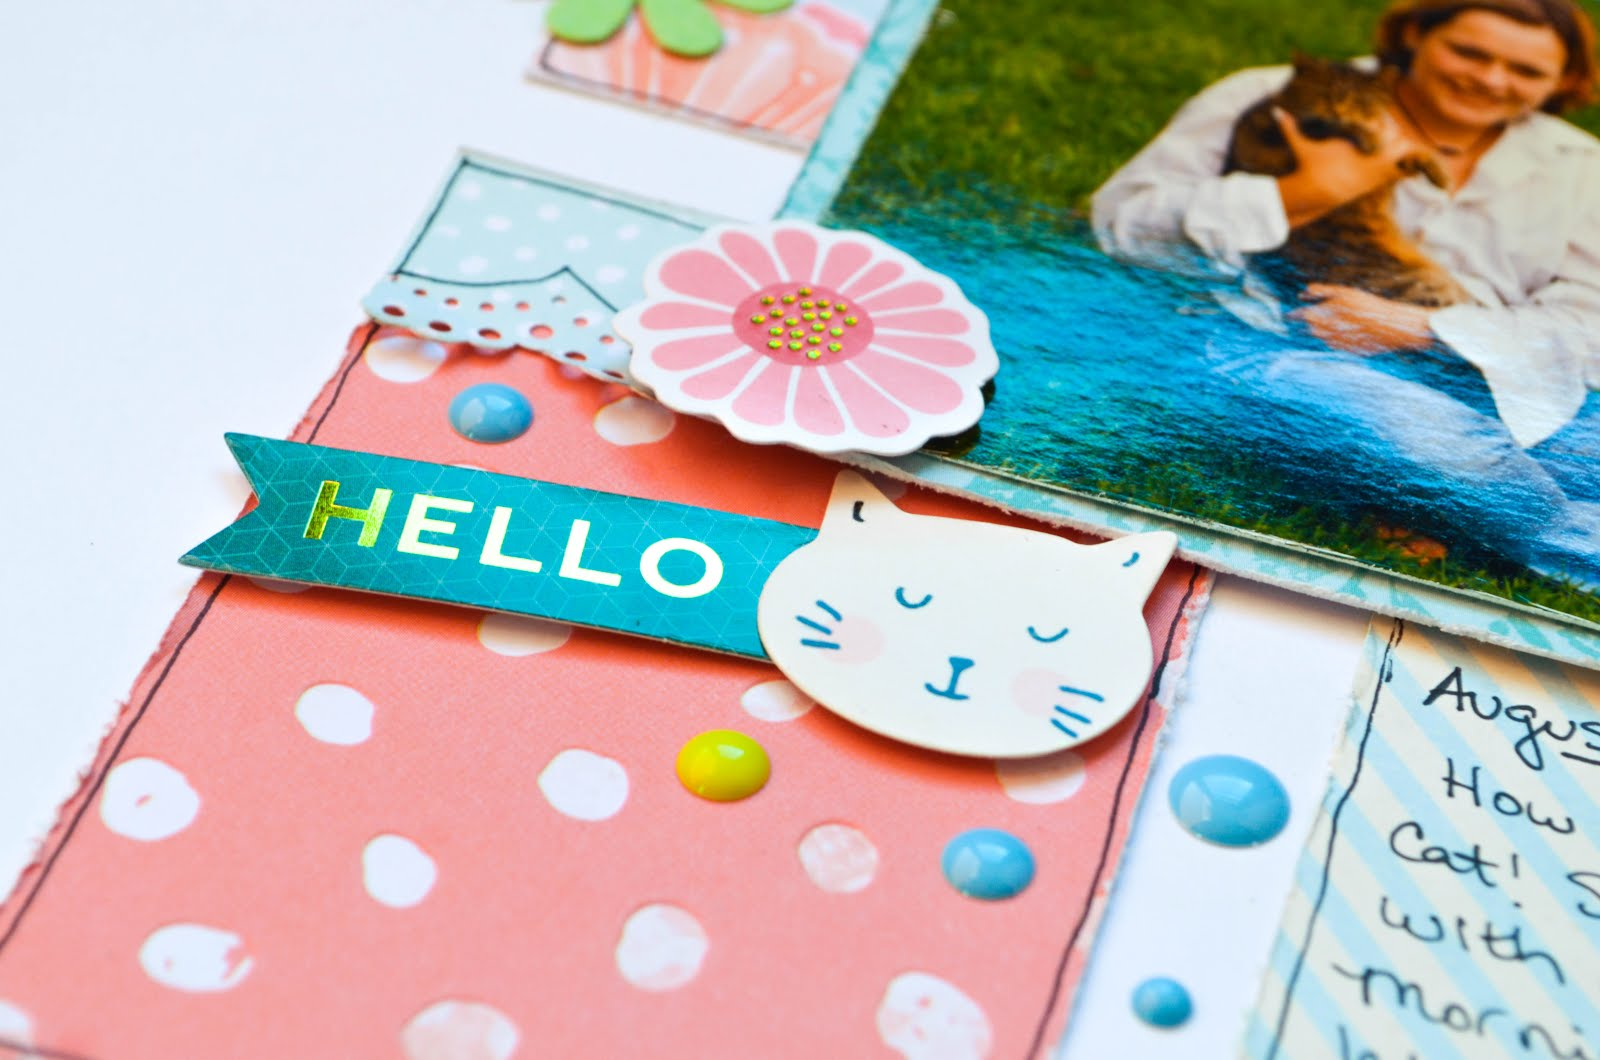 Pastel cat scrapbook page layout in pinks, blues, and greens. with thickers, rainbow, sequins, die cuts